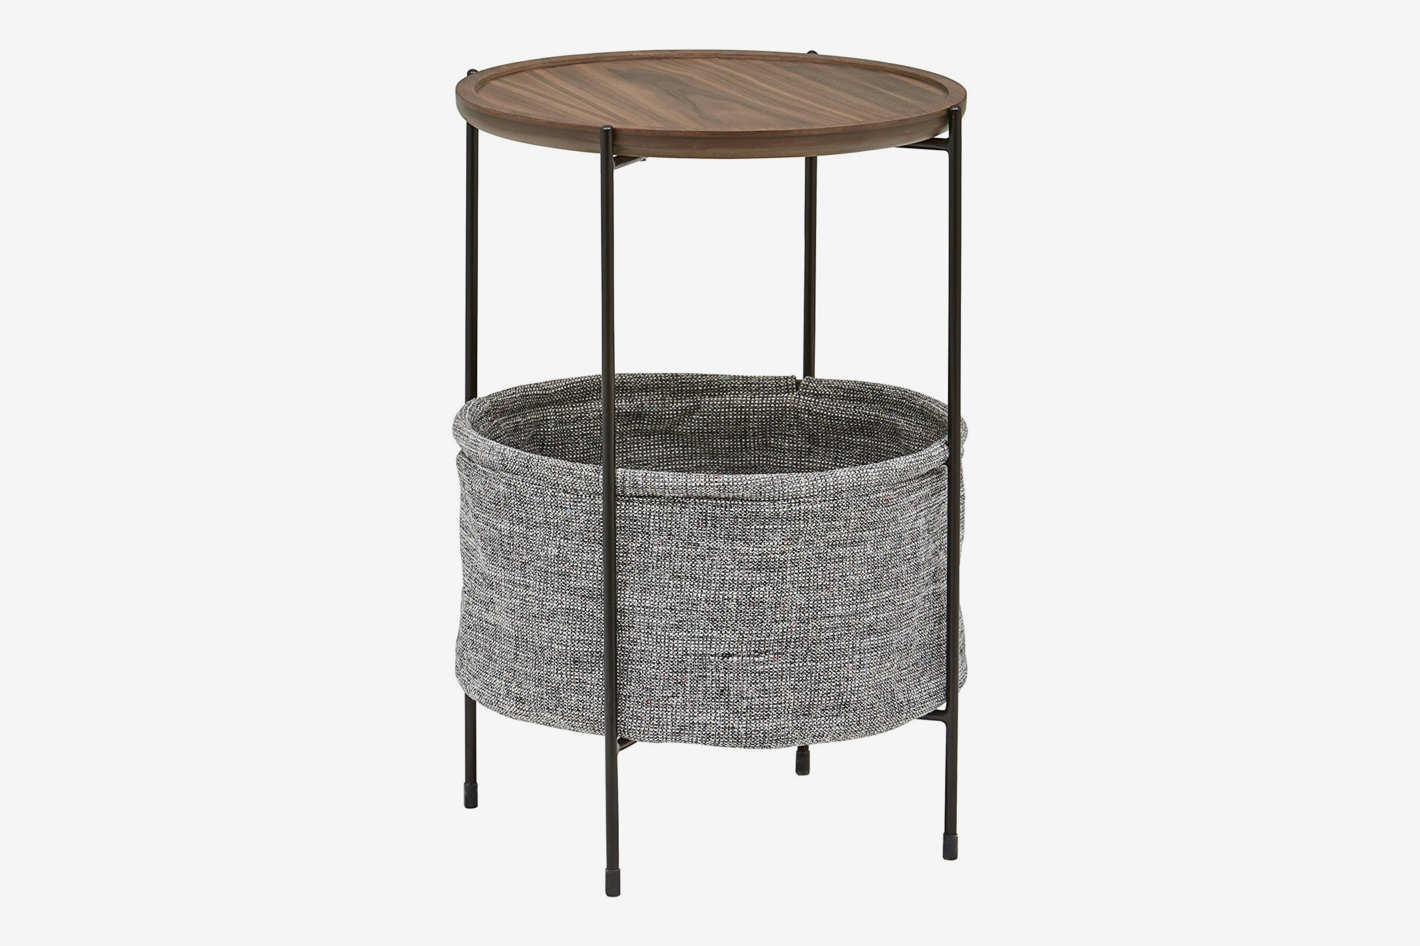 wicker storage baskets that look like decor rivet meeks round basket side table accent narrow hallway contemporary bedroom furniture end green dorm room wooden patio chairs and